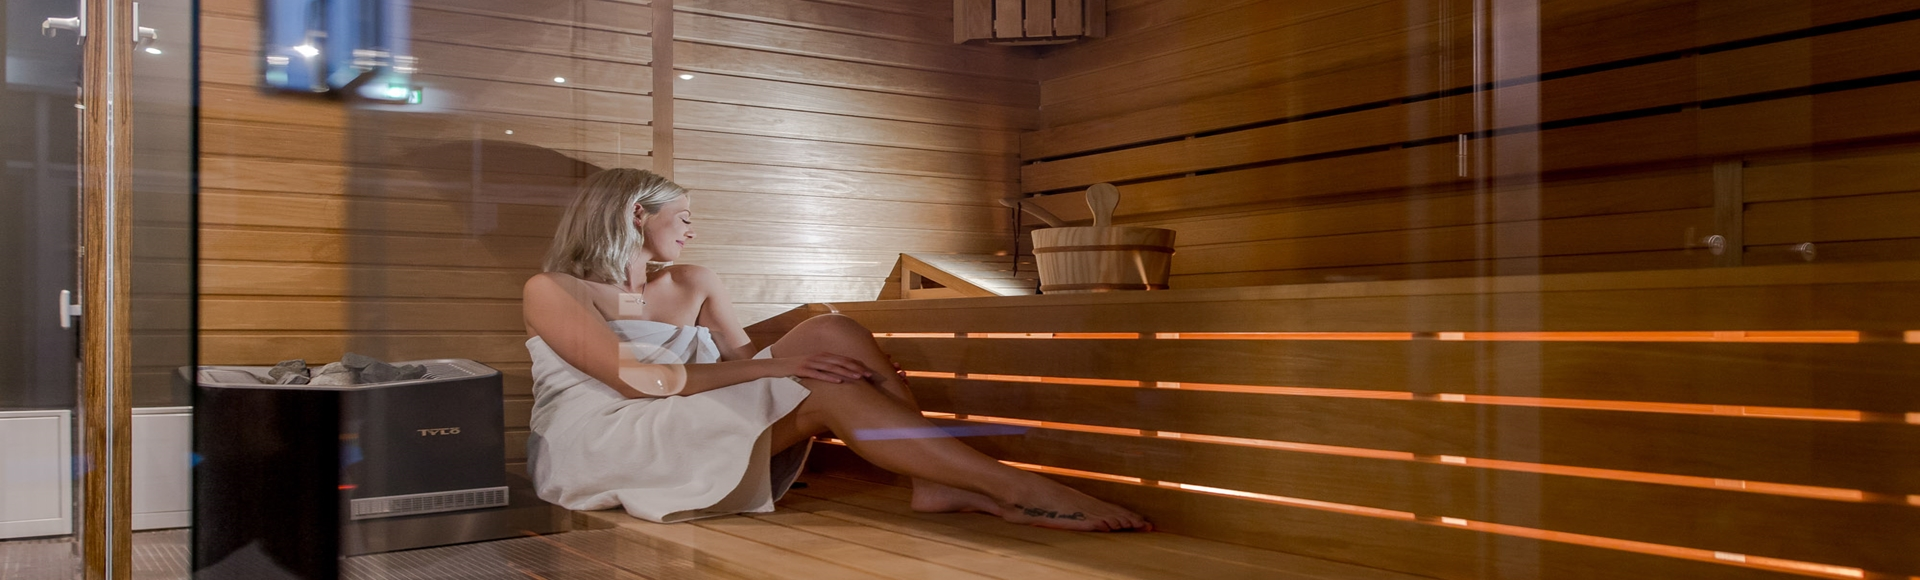 Thermae Saloane wellness & spa u Solinu